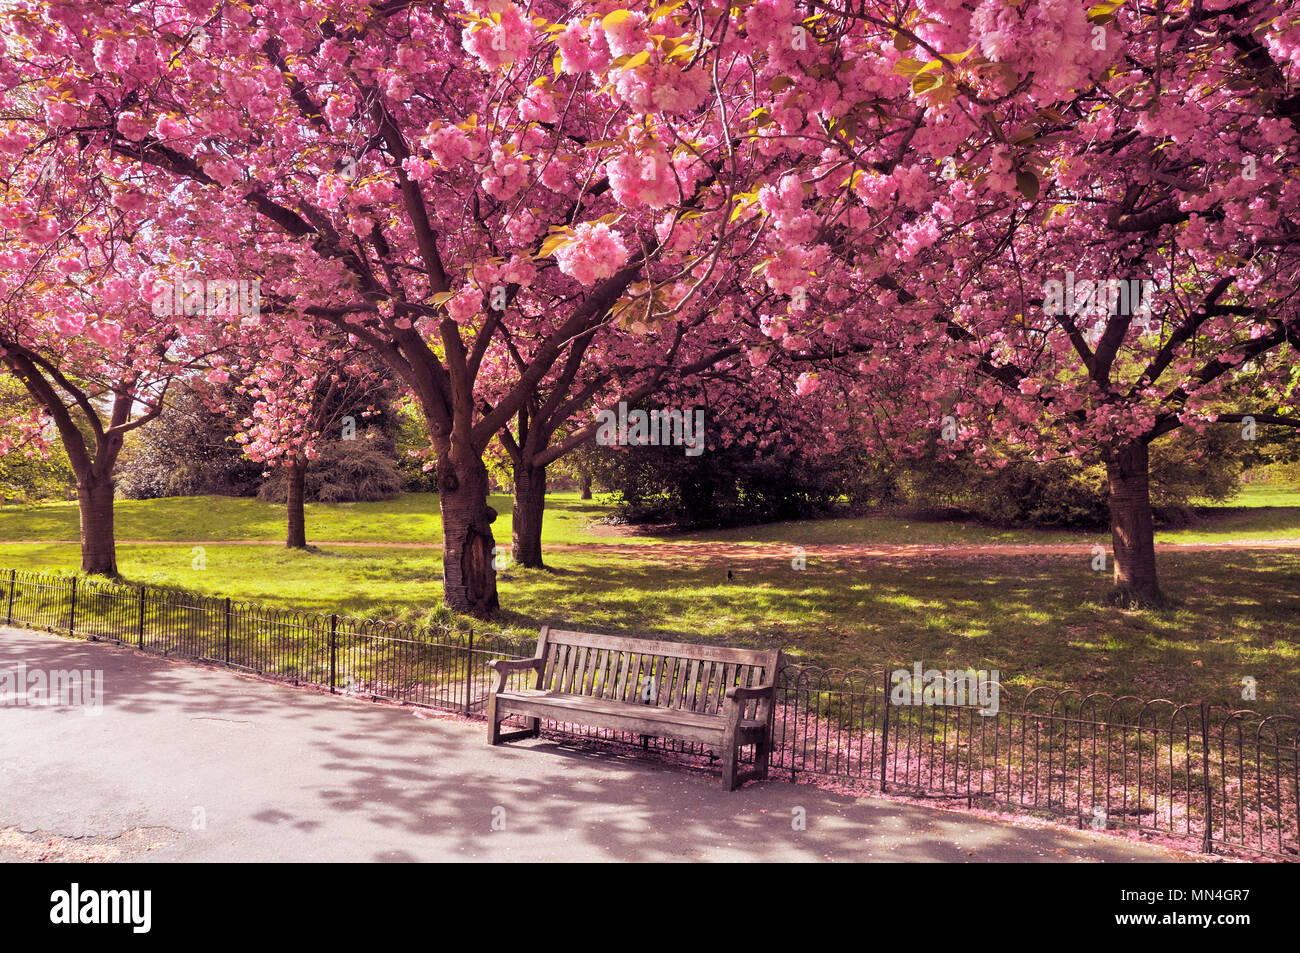 An empty park bench under a canopy of cherry blossom trees, London, England, UK - Stock Image